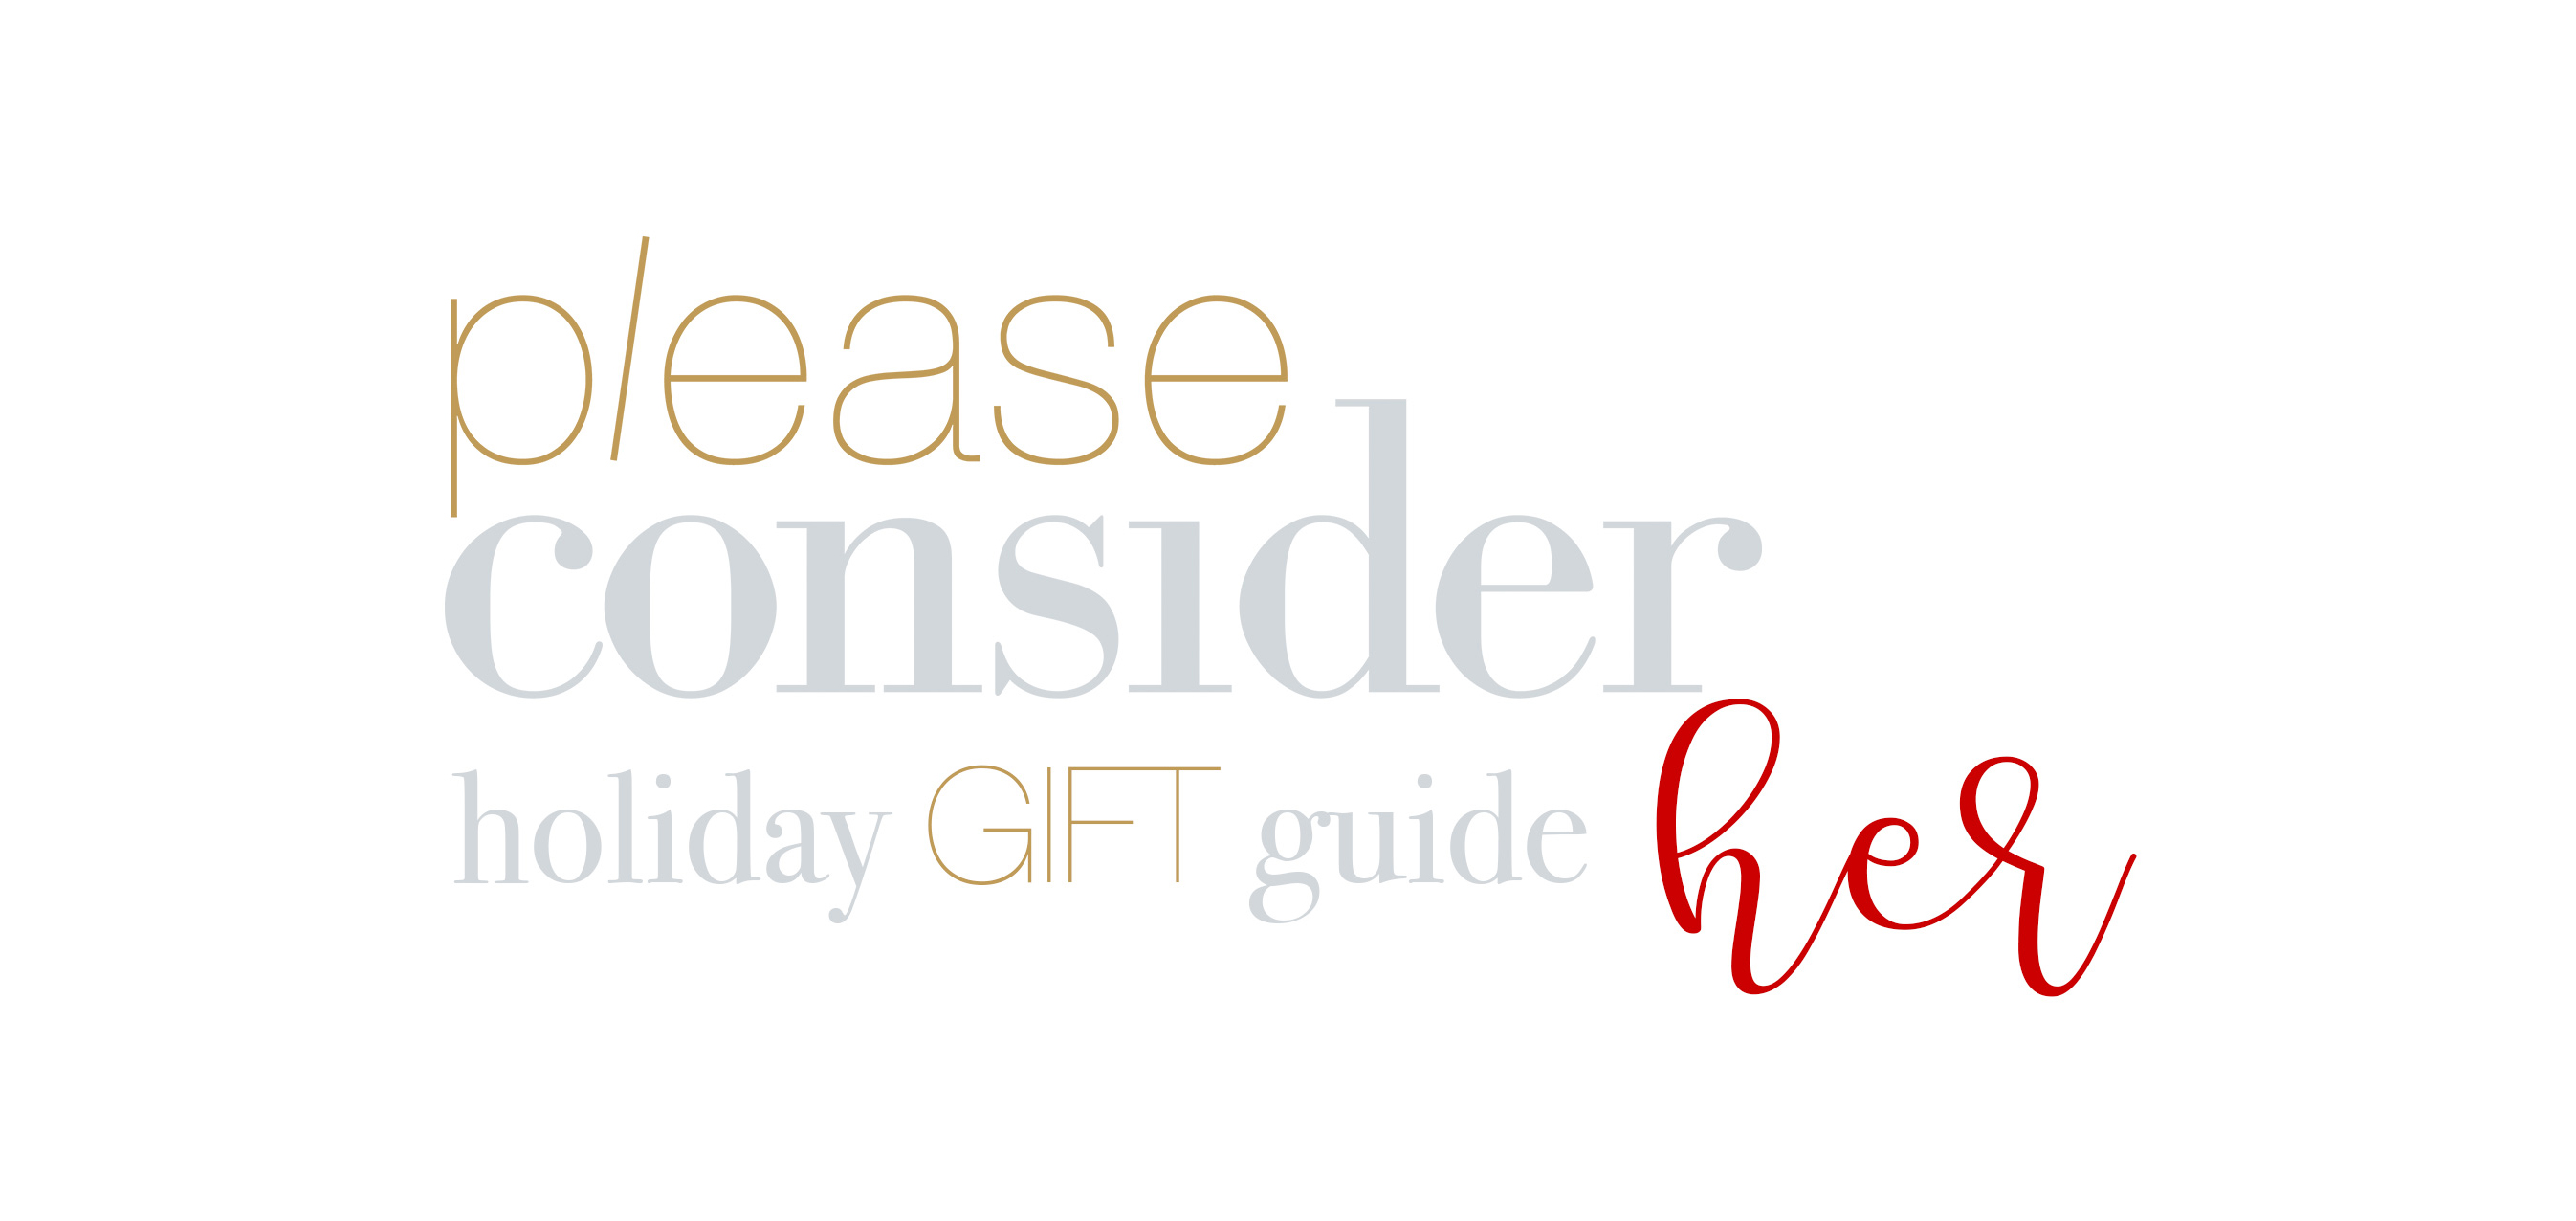 holiday gift guide for her | please consider | joana limao